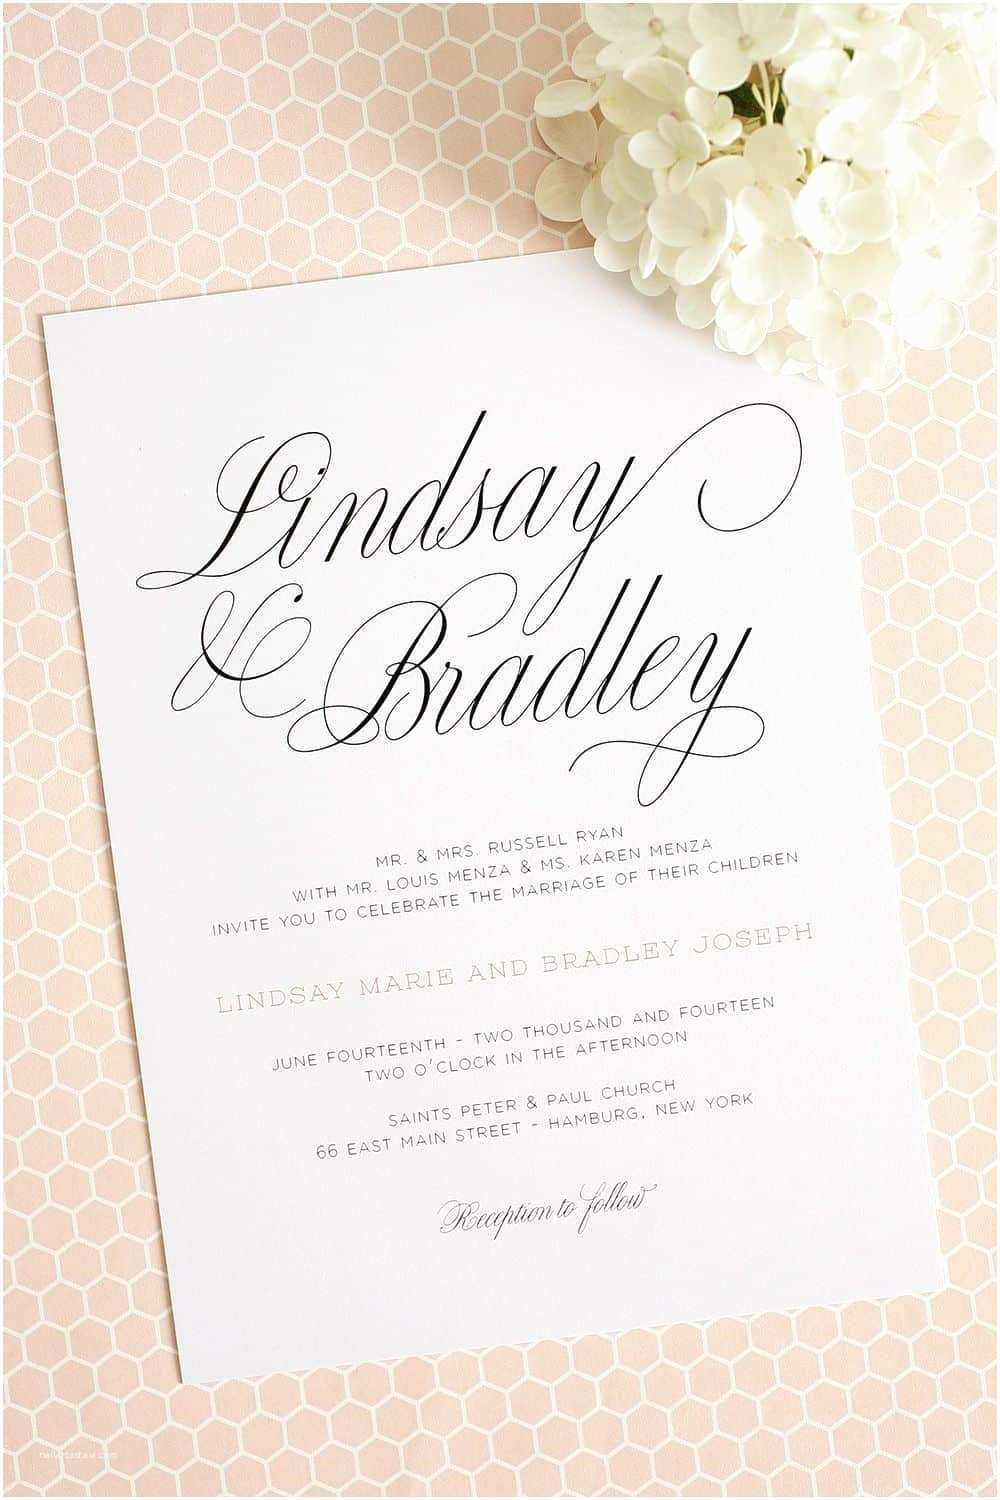 Simple Wedding Invitations Simple Wedding Invitations Best Photos Cute Wedding Ideas